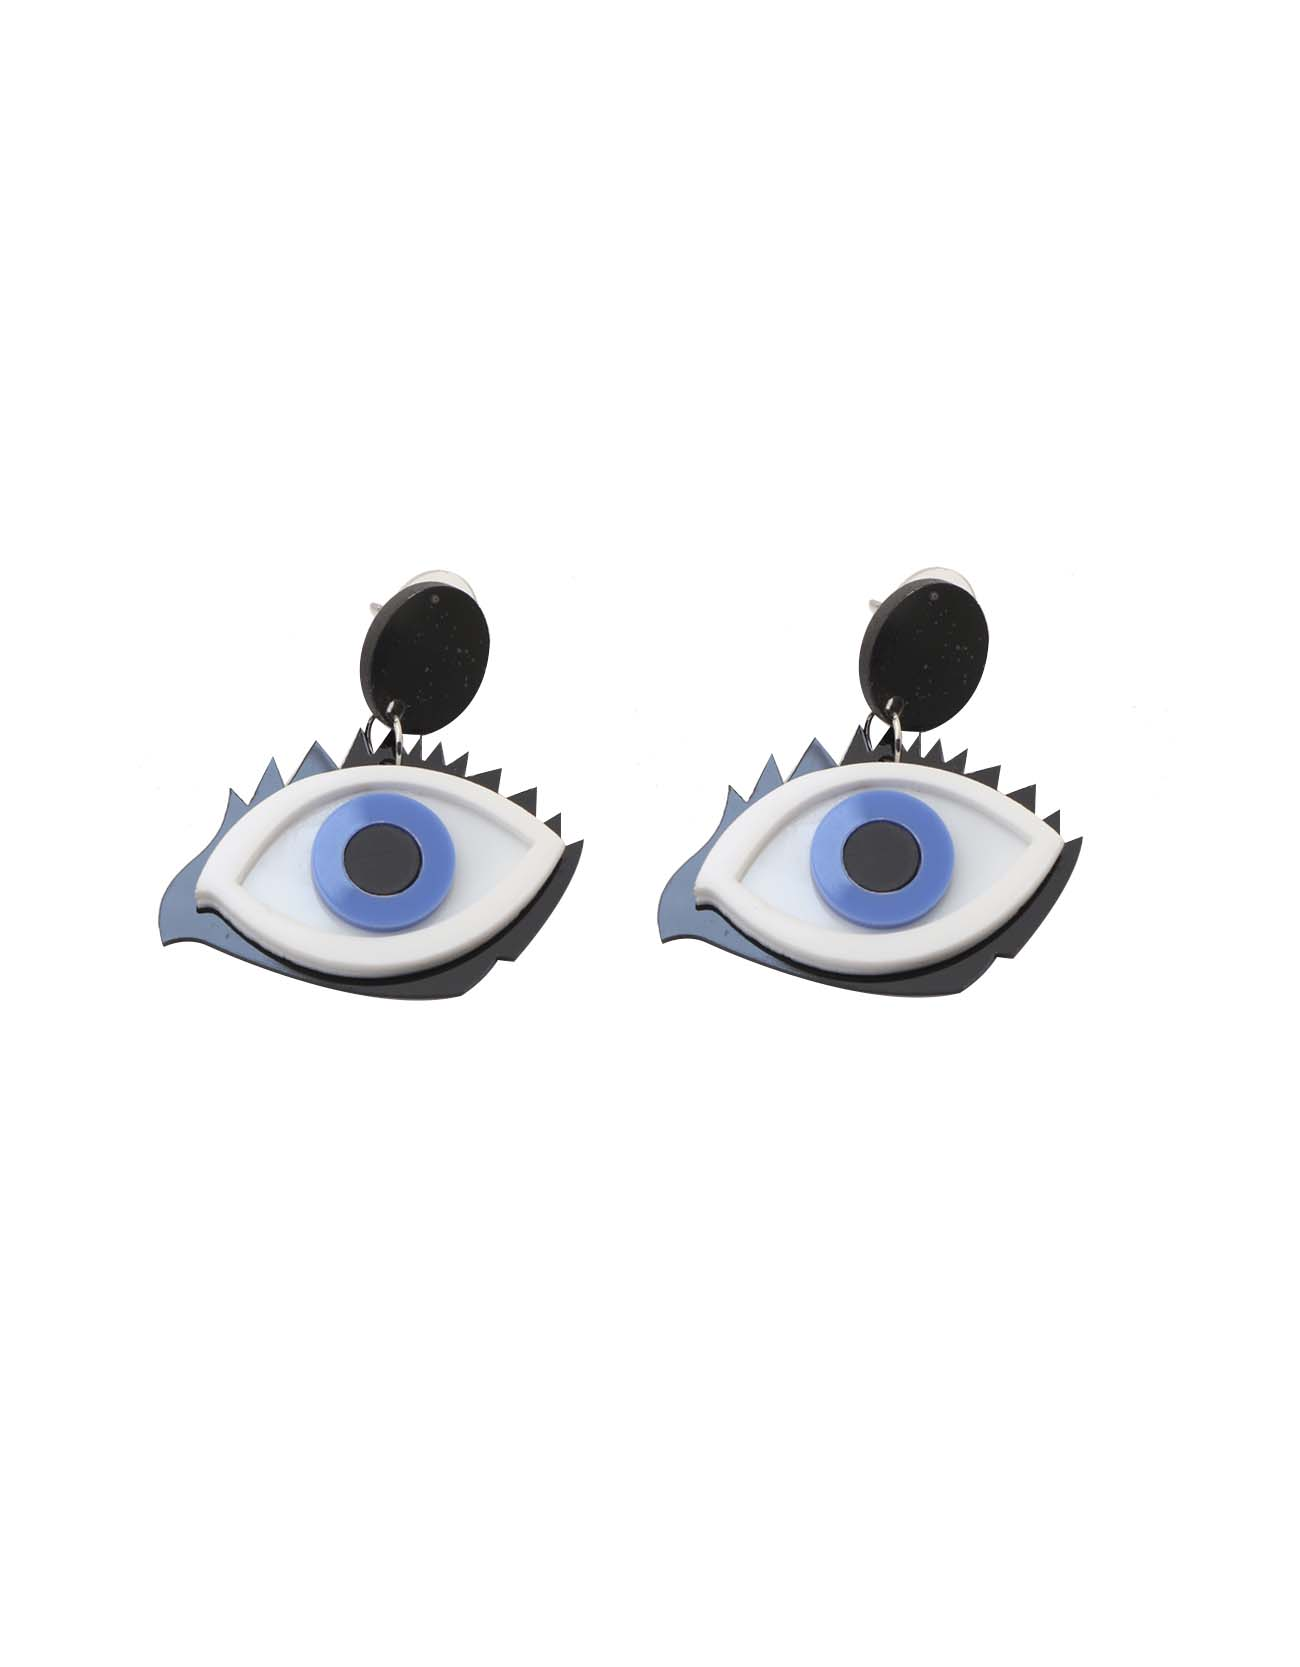 Eye Shaped Earrings